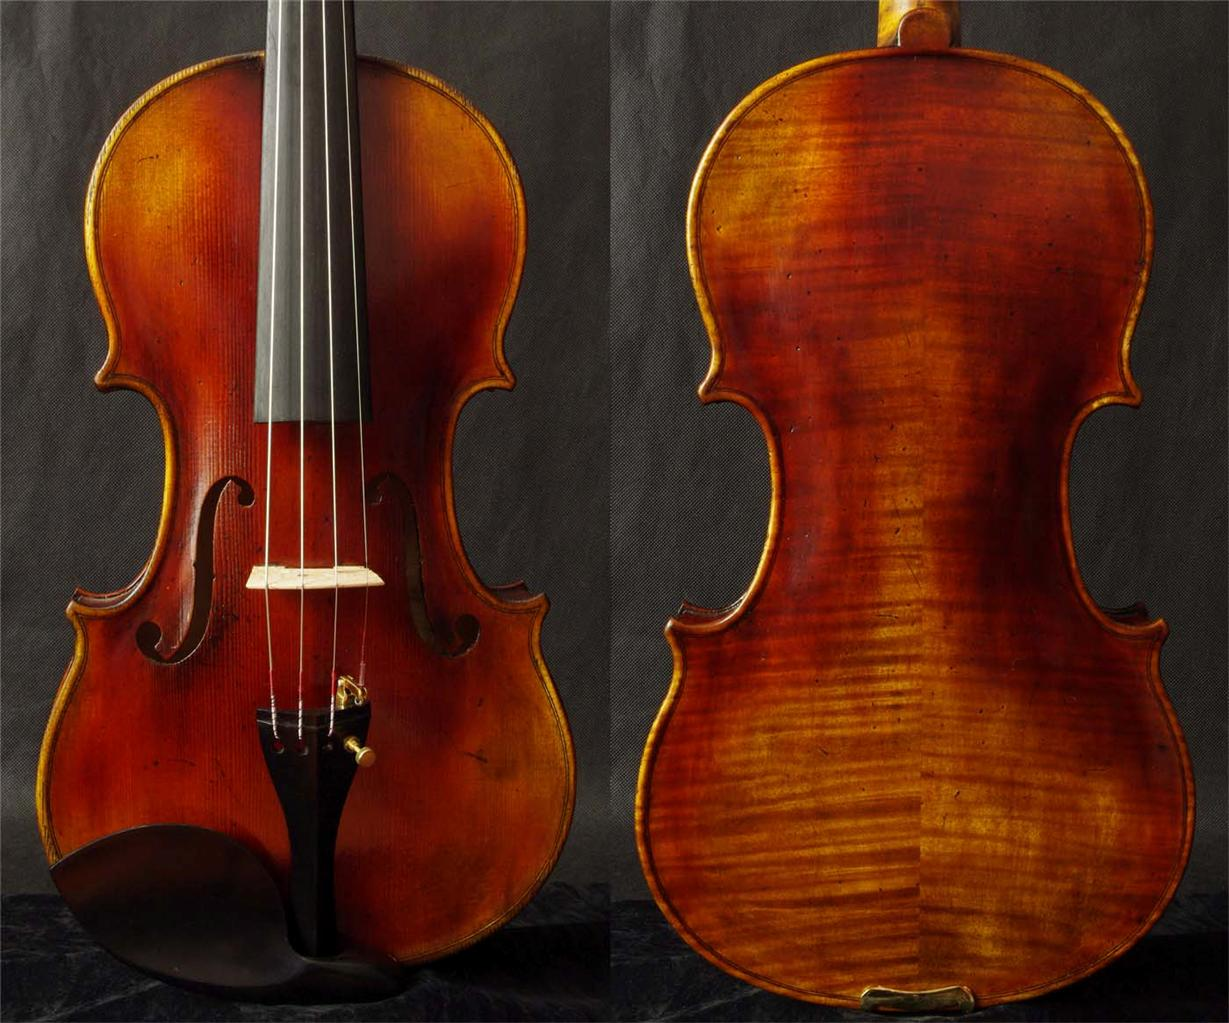 stradivarius wallpaper - photo #10